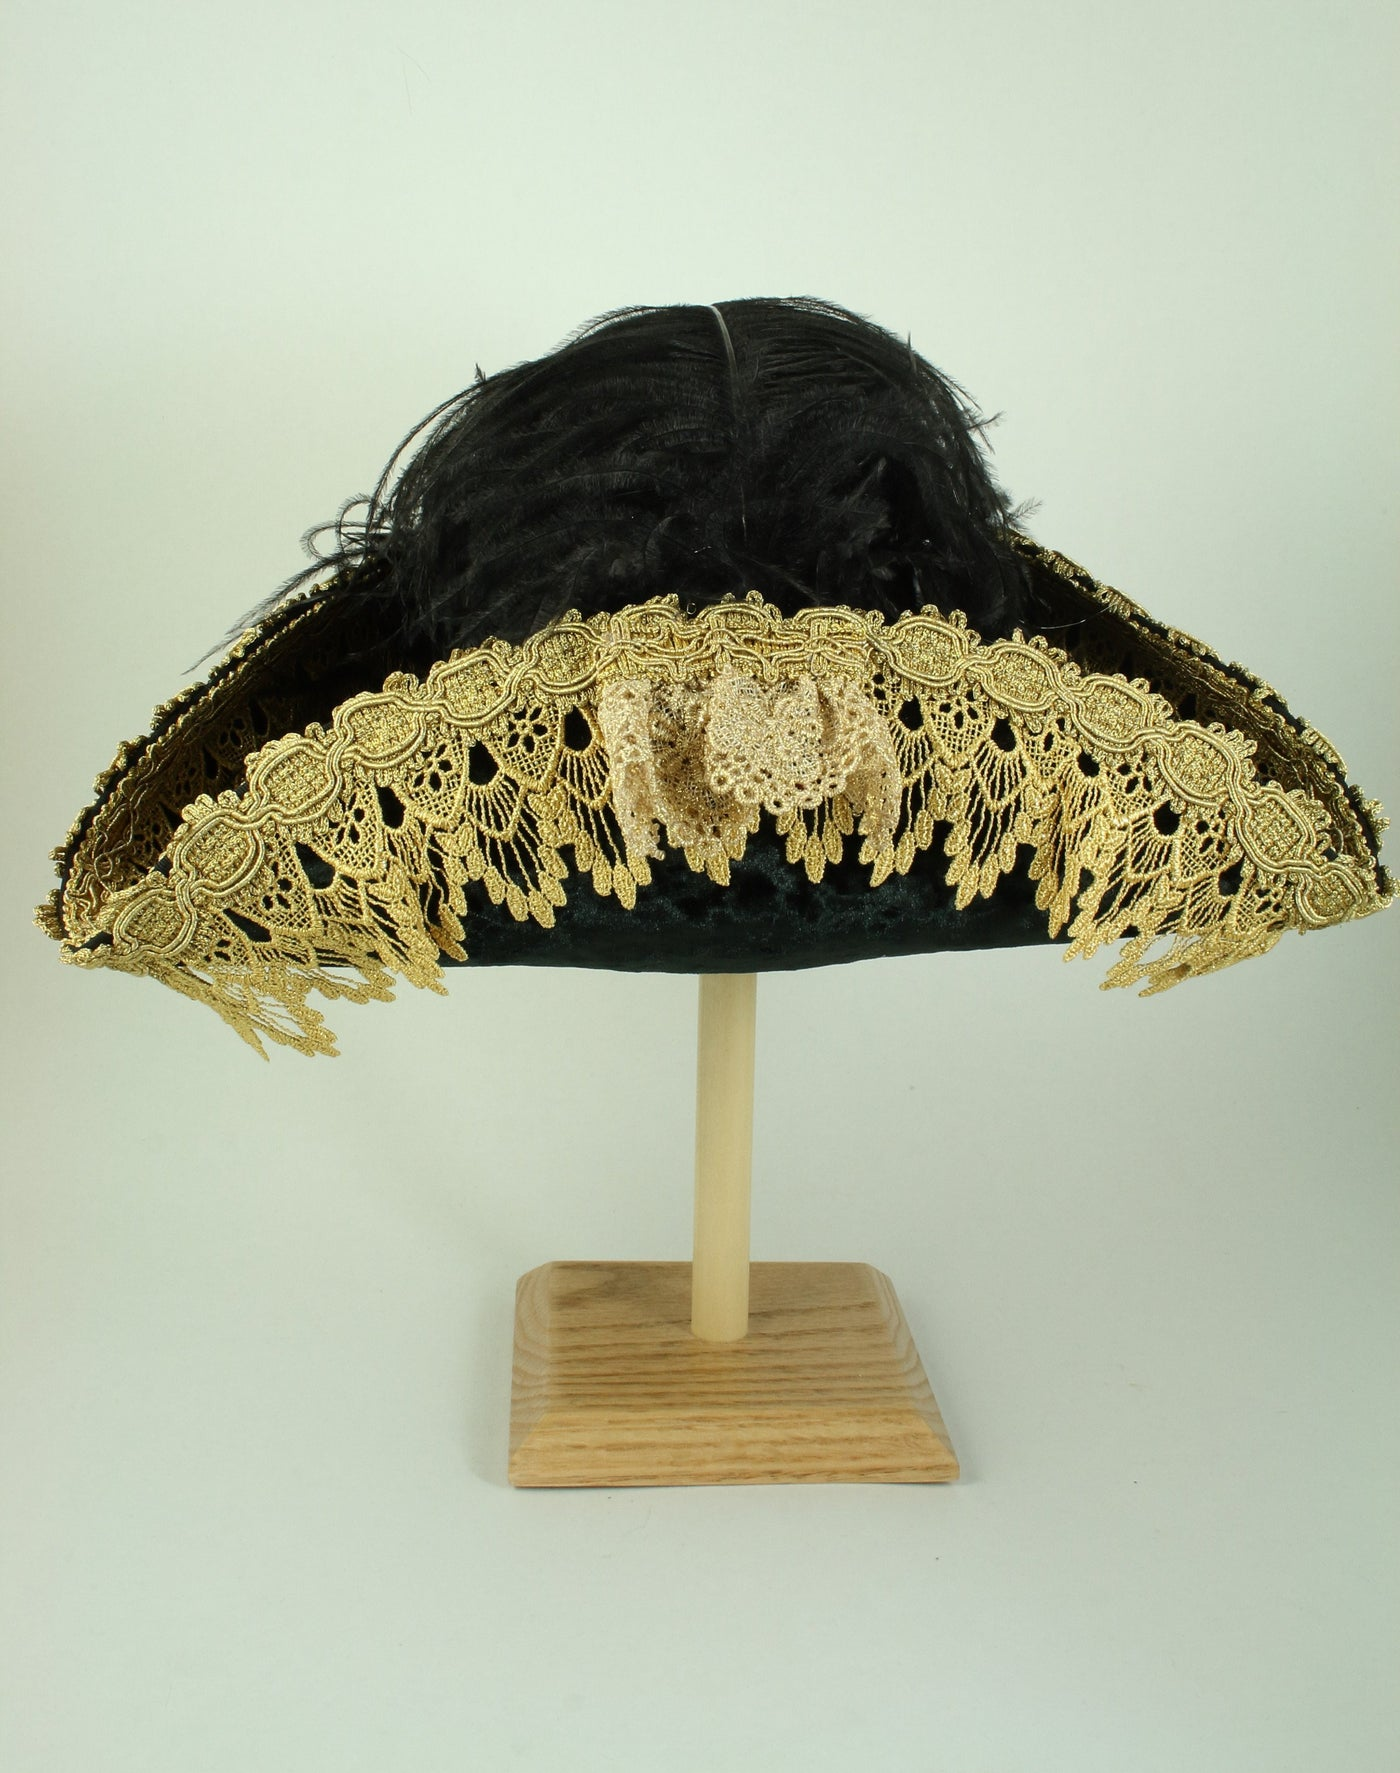 Pirate Hat - Black / Gold Metallic Lace - Tall Toad